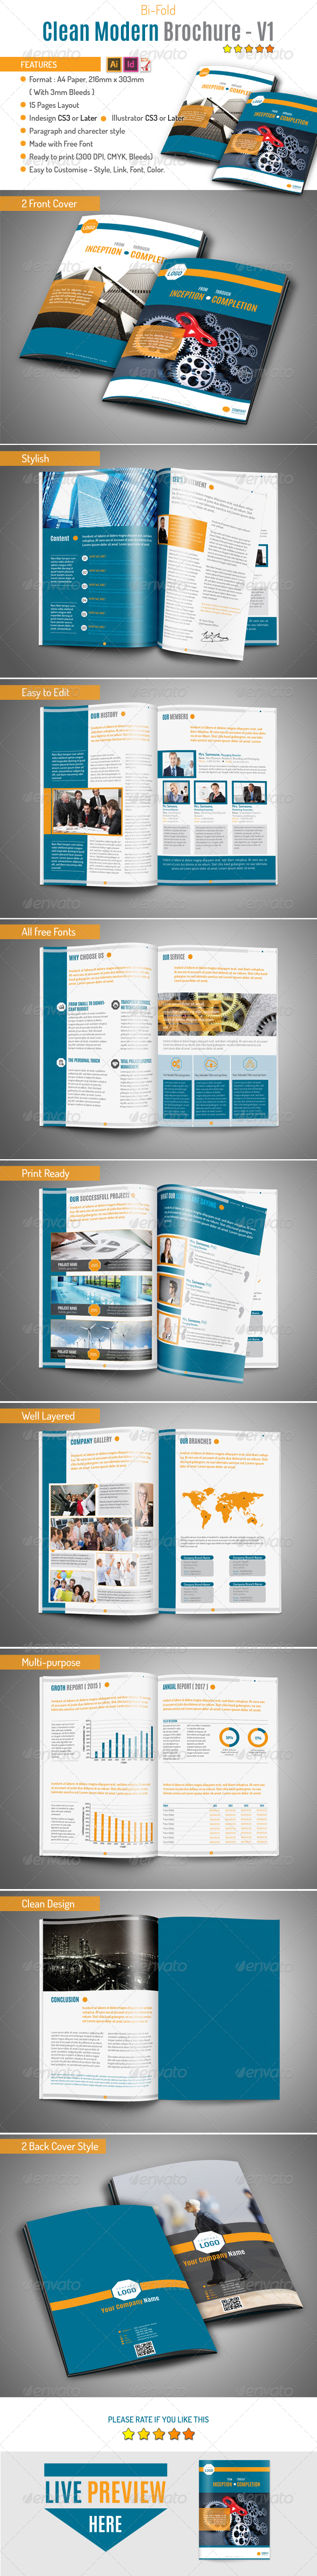 GraphicRiver Clean Modern Brochure v1 8397719